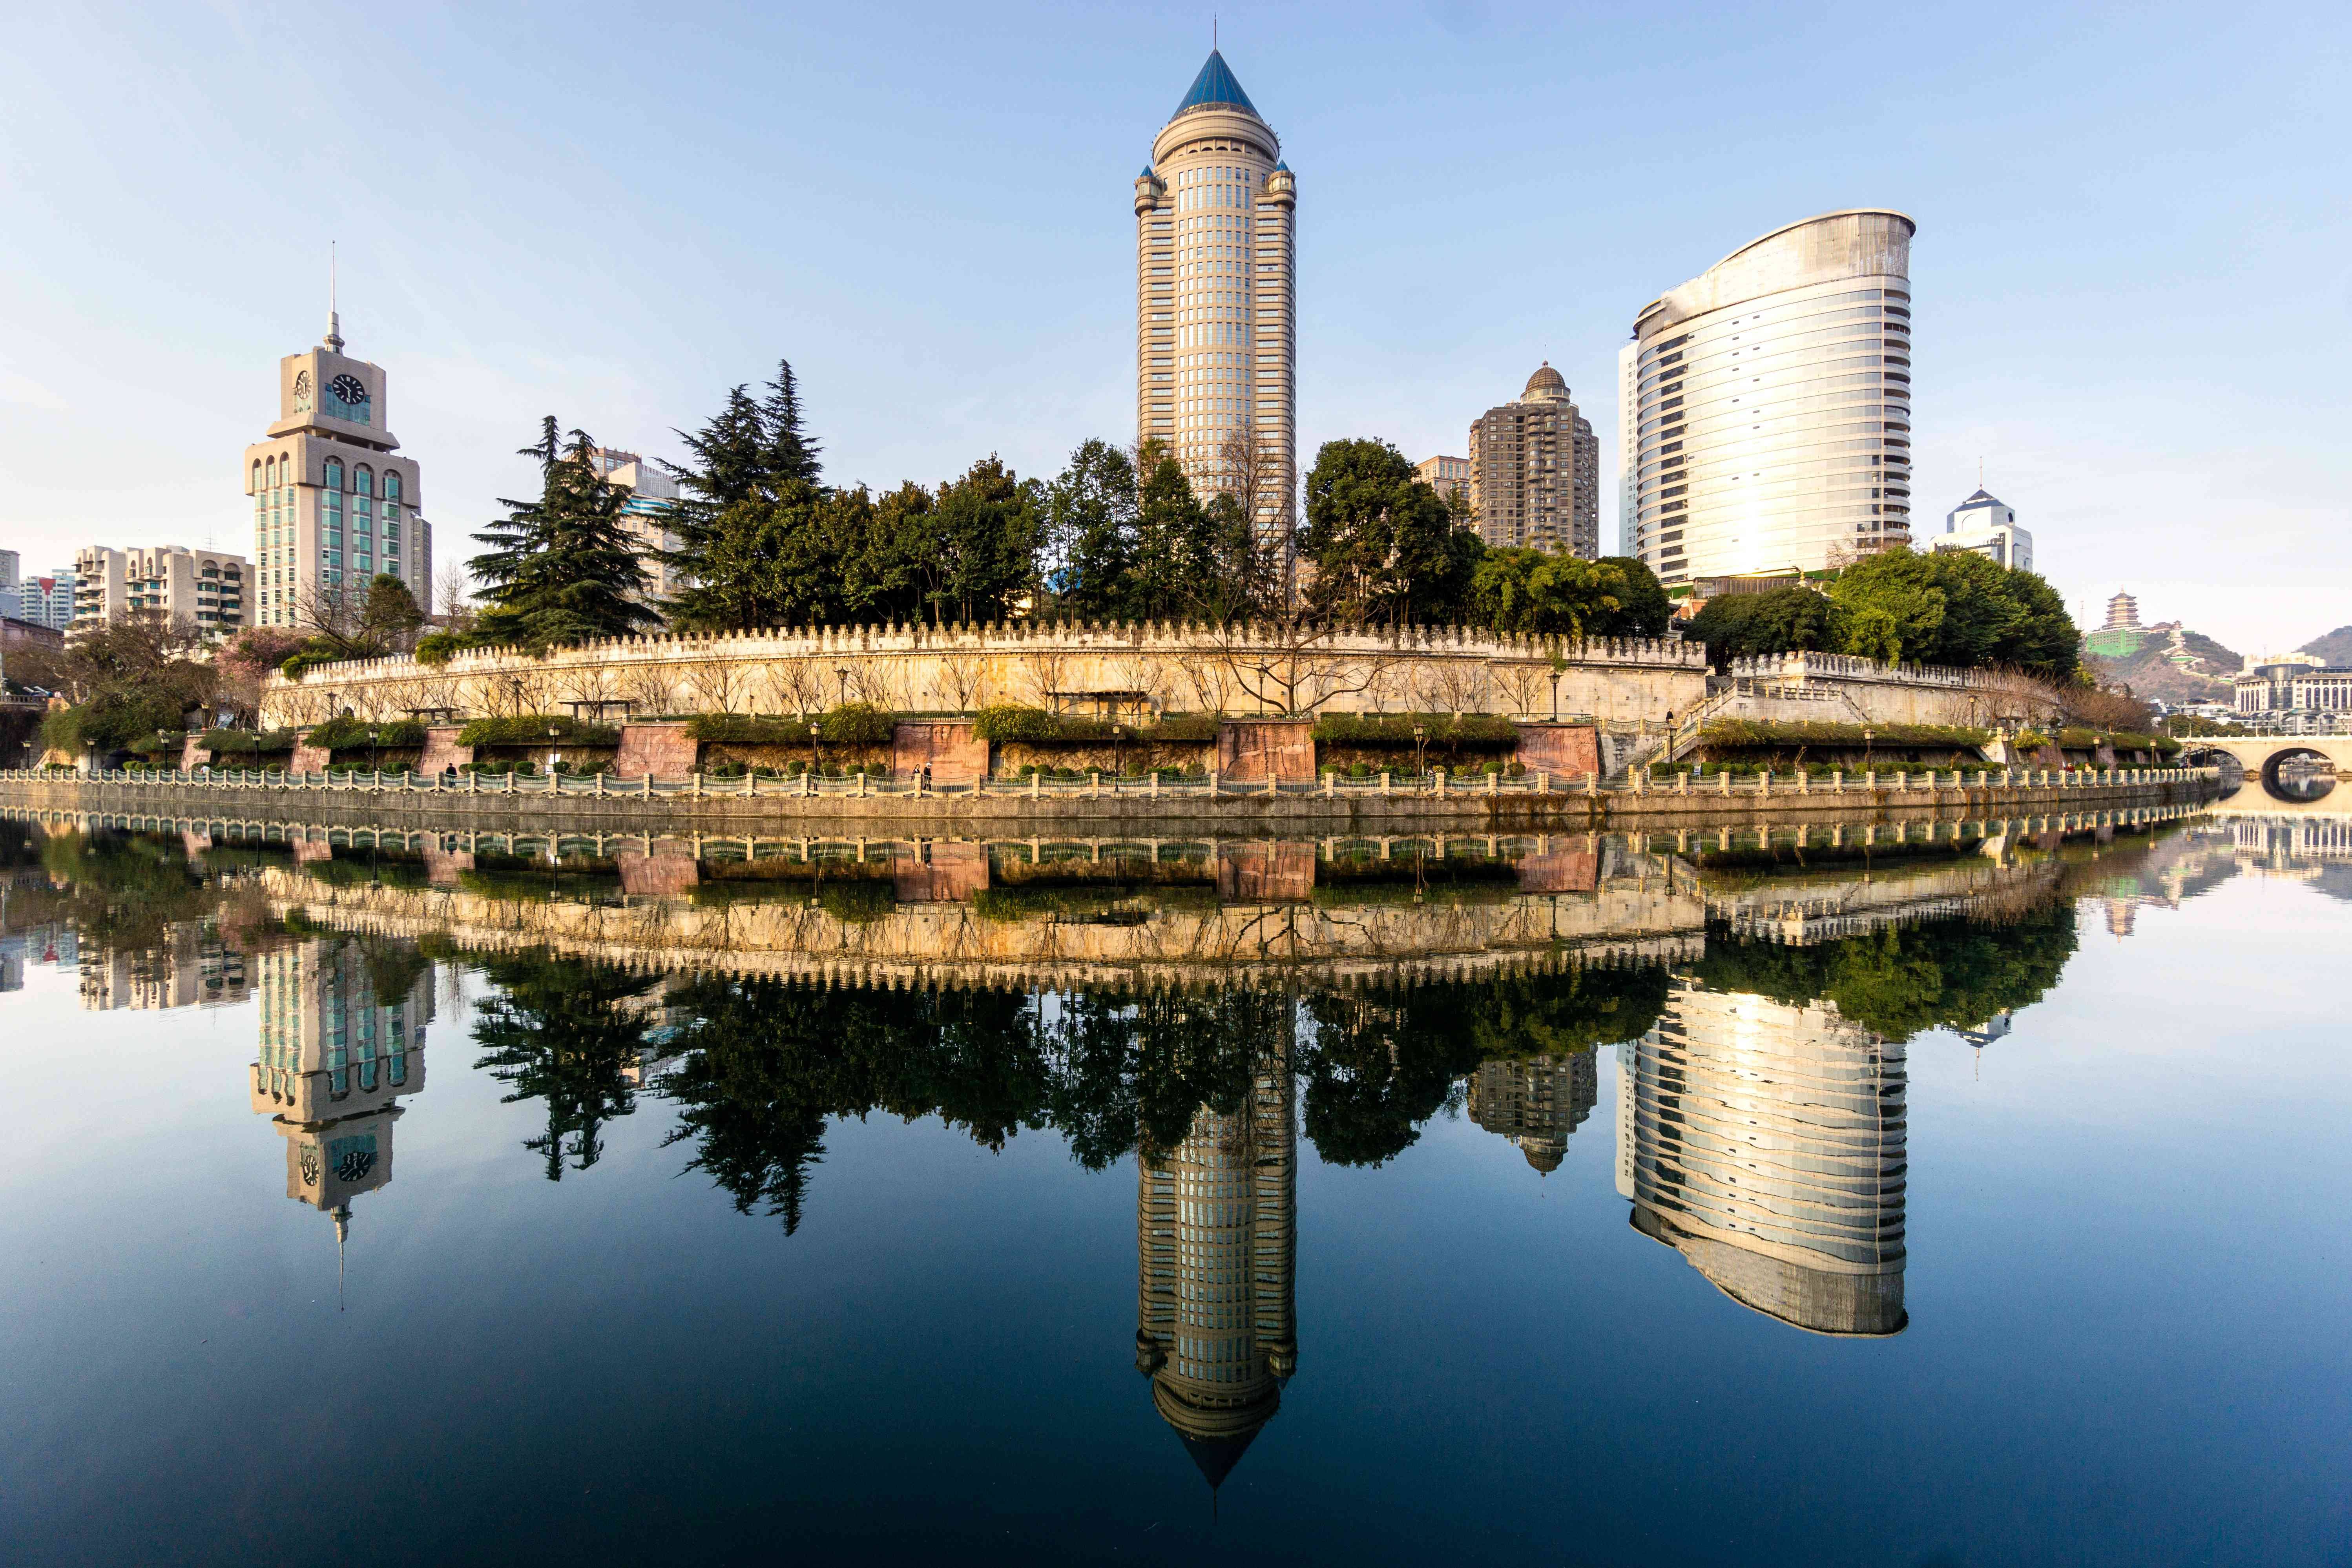 The mirrored reflection of the business district in Guiyang